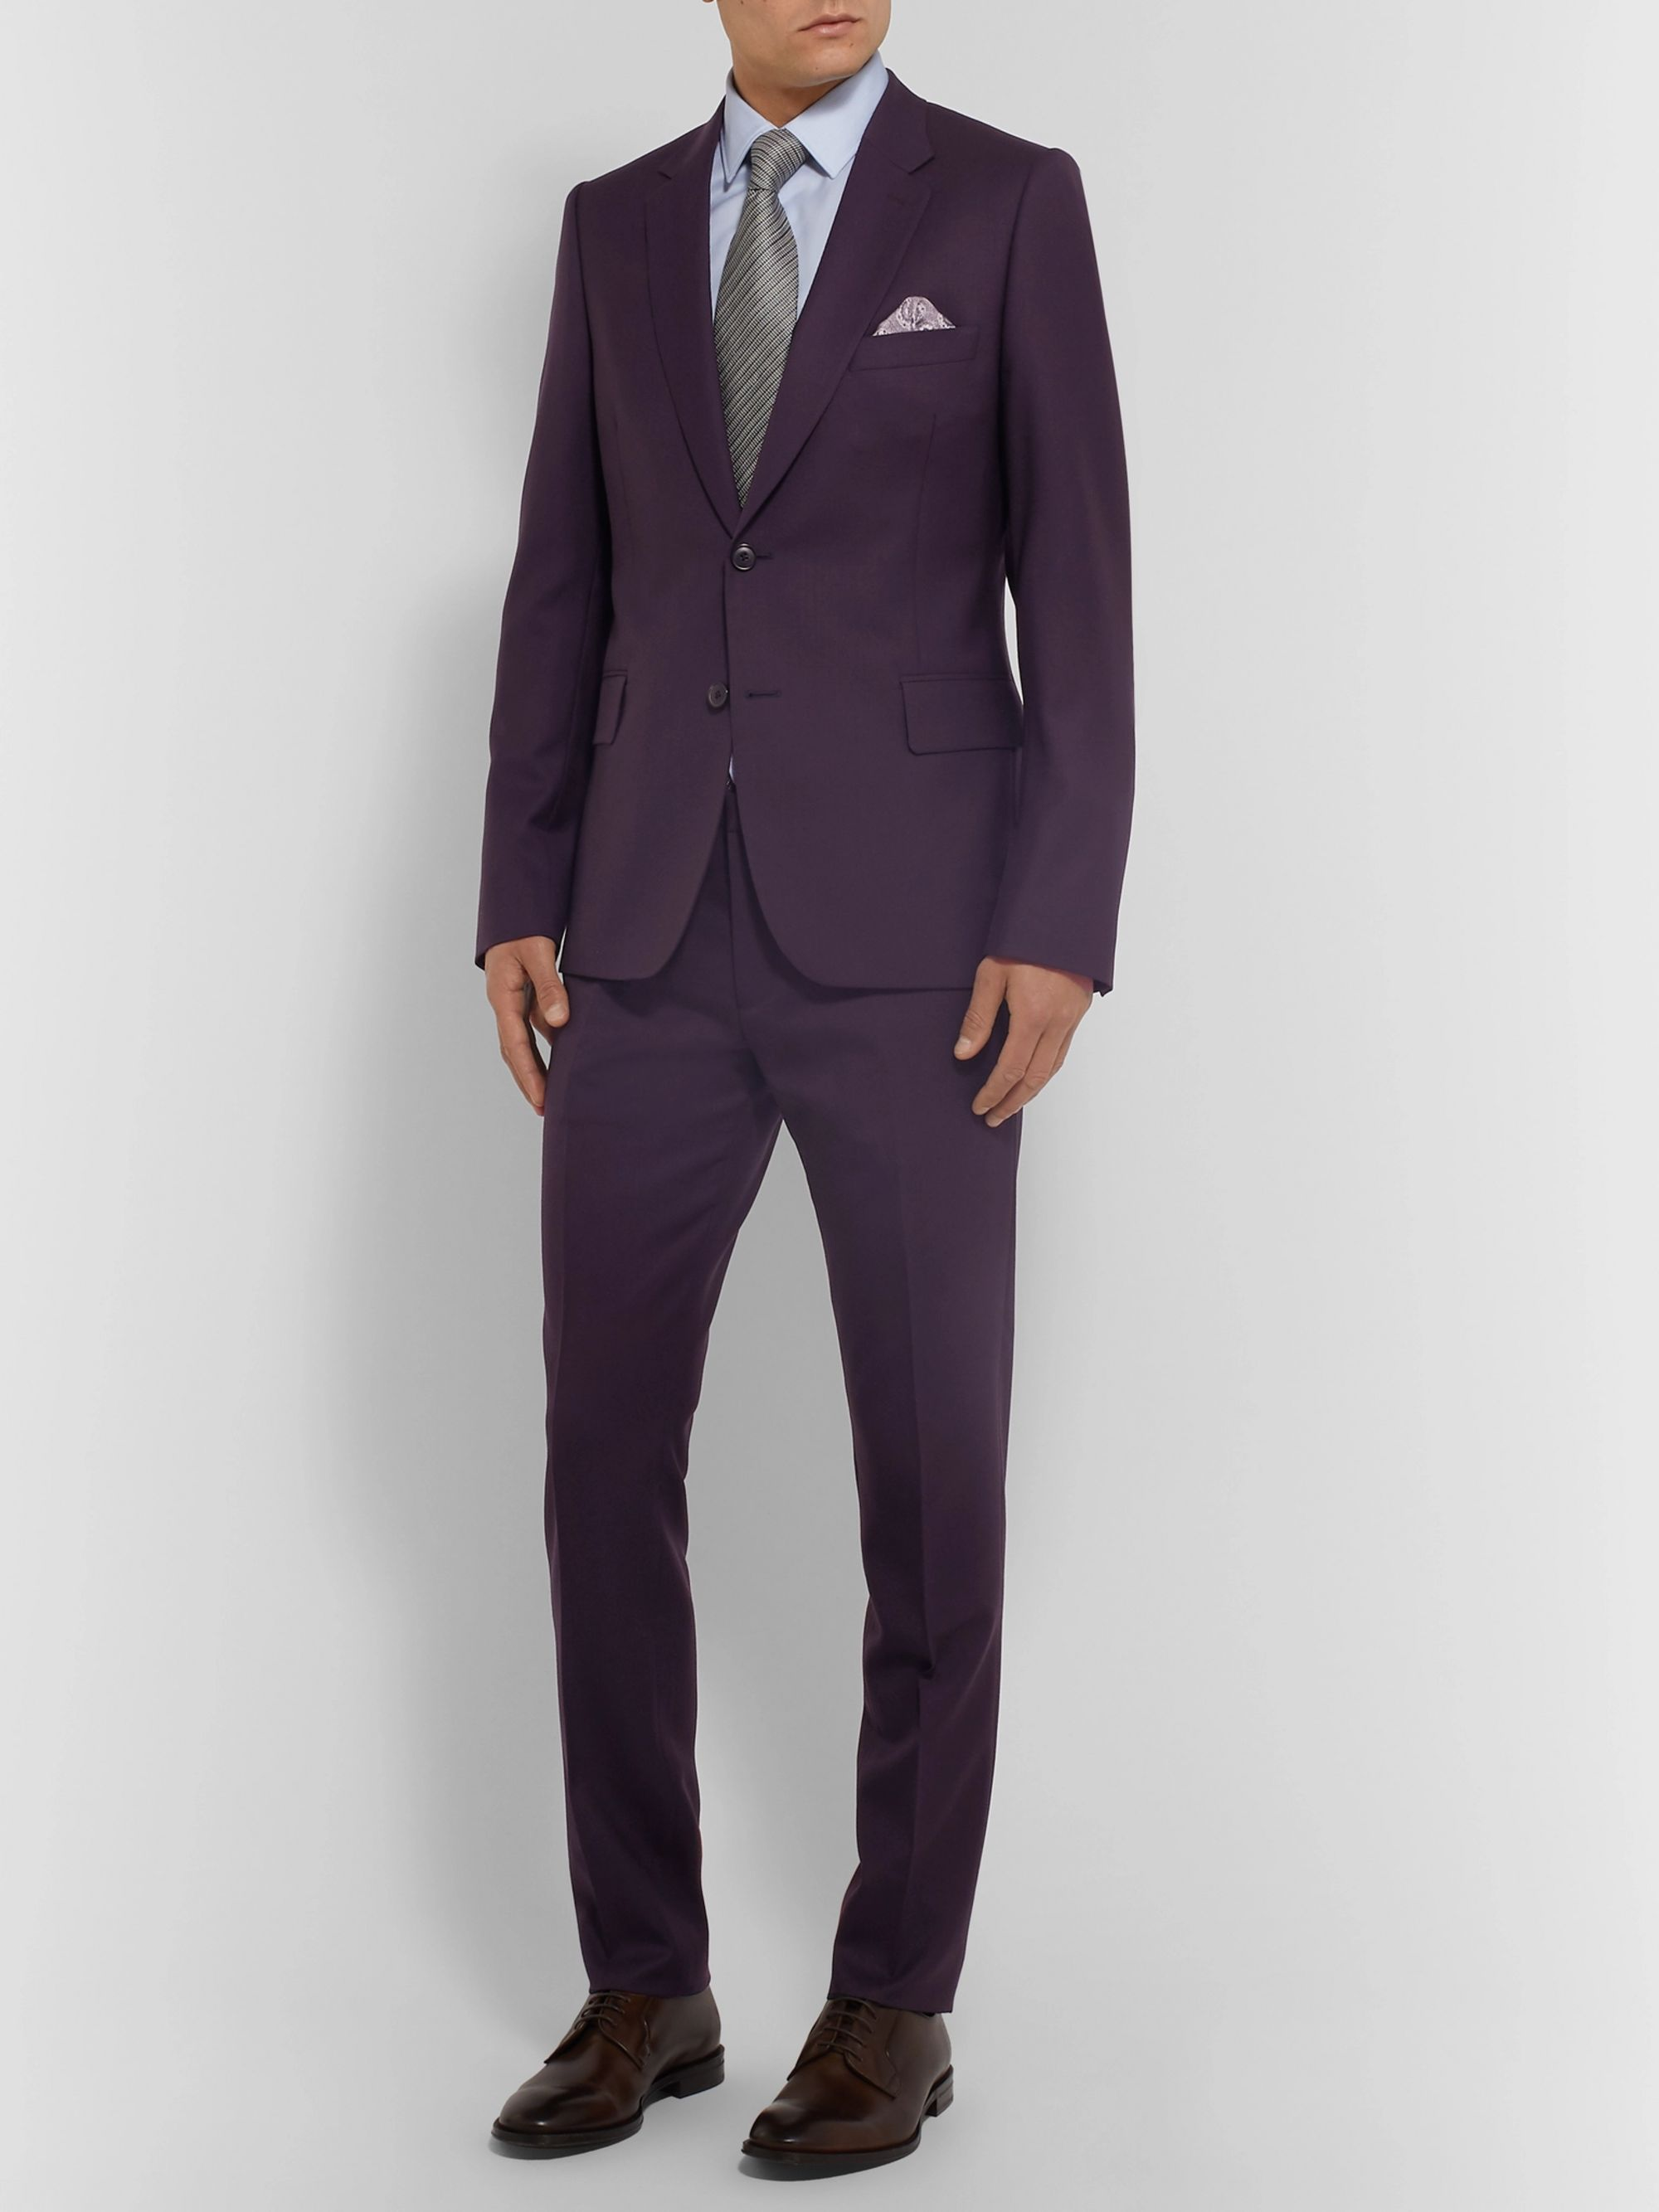 Paul Smith Aubergine Soho Slim-Fit Wool Suit Jacket